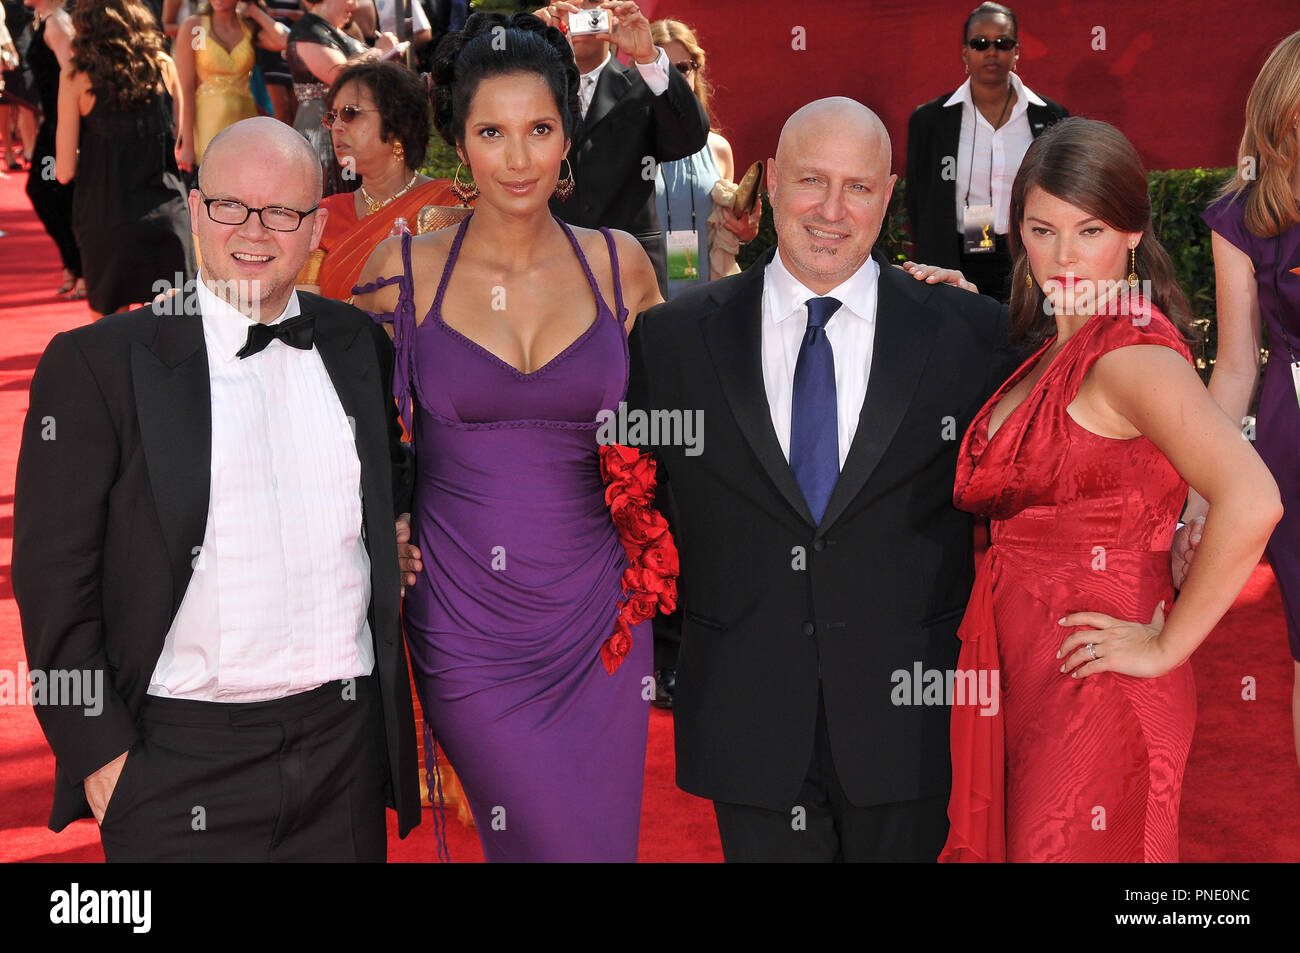 TOP CHEF Cast -Toby Young, Padma Lakshmi, Tom Colicchio & Gail Simmons at the 61st Annual Primetime Emmy Awards - Arrivals held at the Nokia Theater in Los Angeles, CA on Sunday, September 20, 2009. Photo by: PRPP / PictureLux  File Reference # Top_Chef_Cast_92009_1PRPP  For Editorial Use Only -  All Rights Reserved - Stock Image